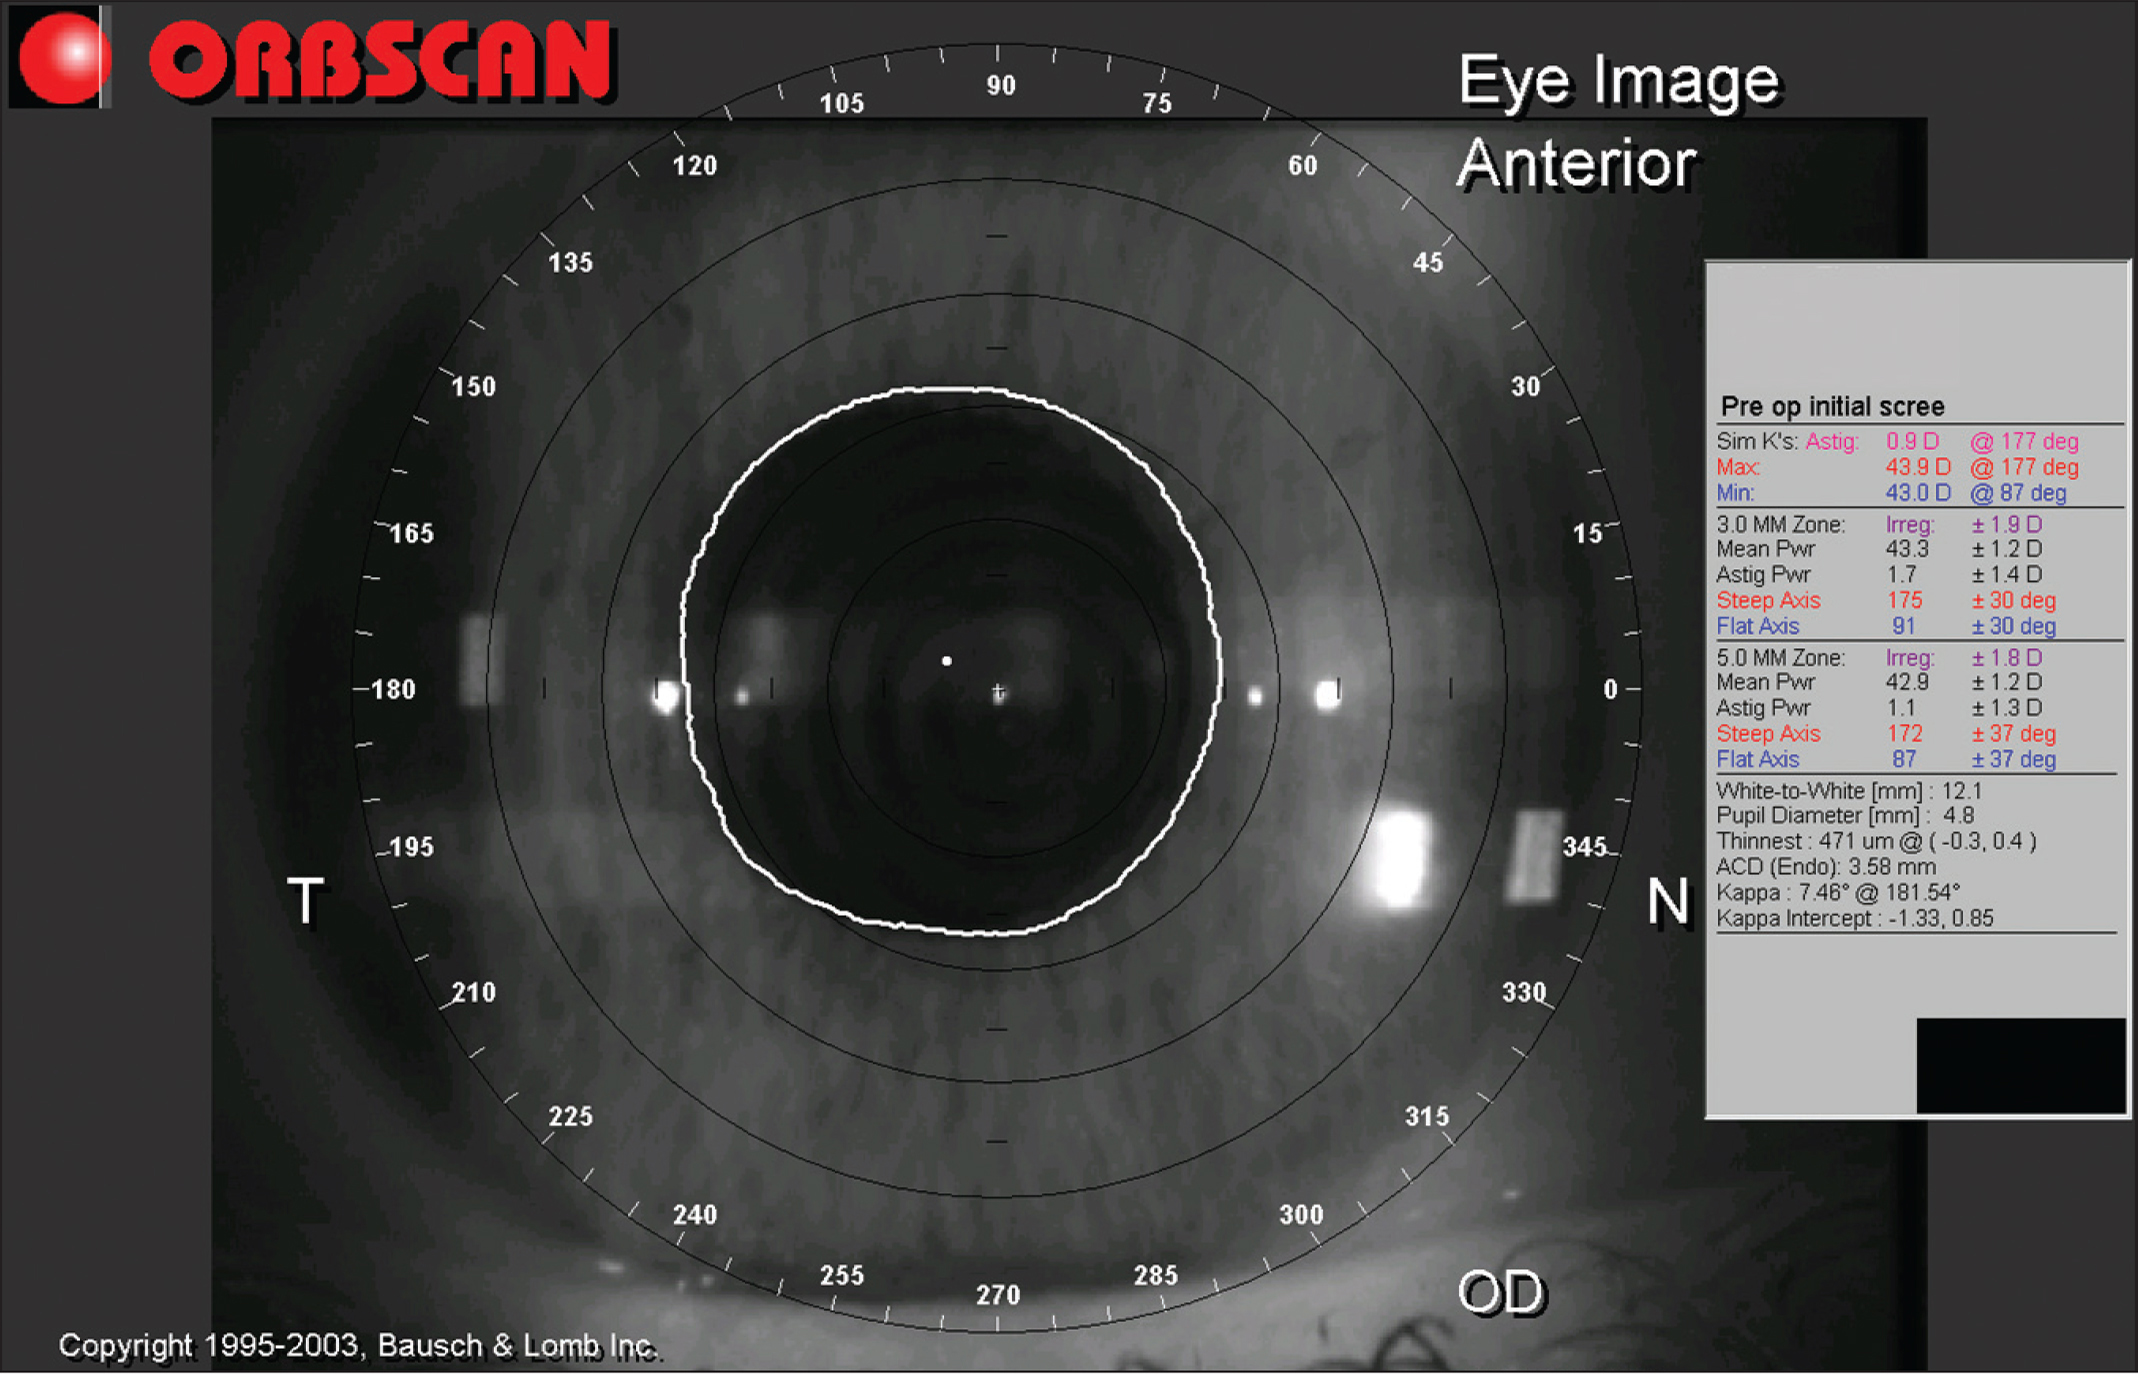 Orbscan II whole eye view with pupil recognition software (Bausch & Lomb). The white line is displayed automatically to match the circumference of the pupil.